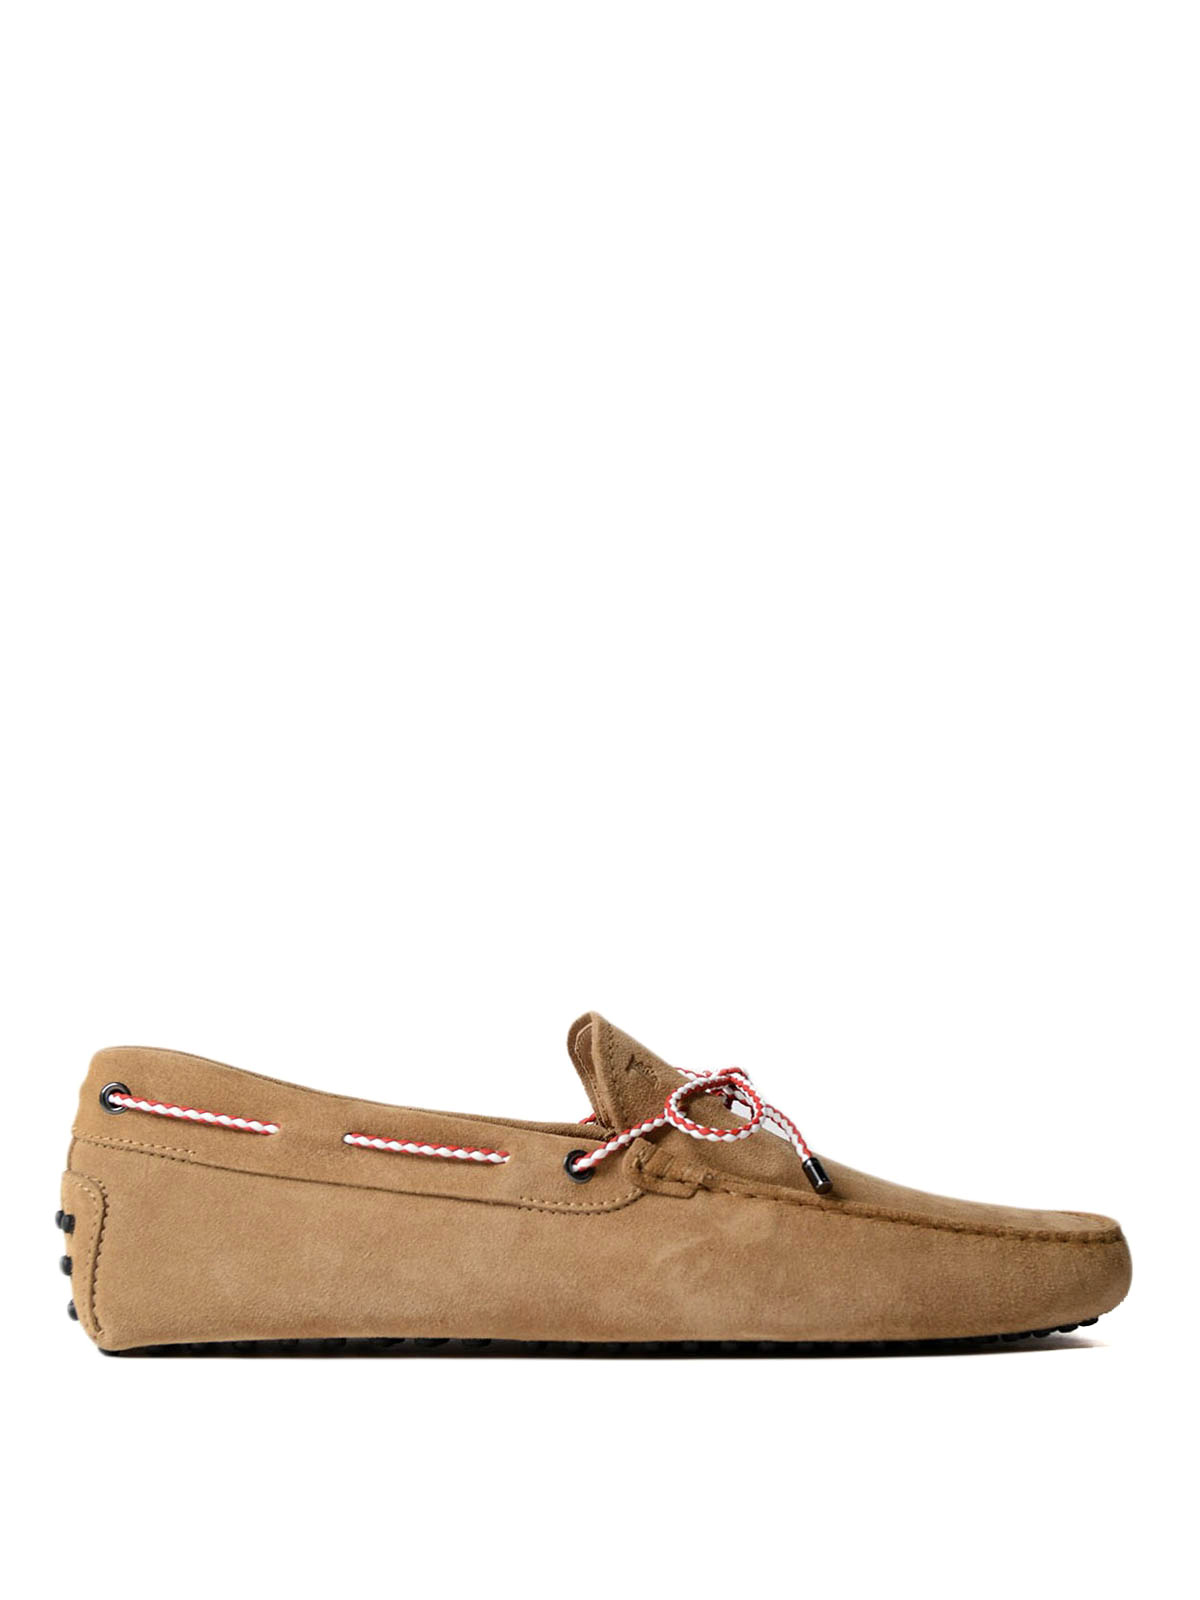 8834bea2175 light brown suede loafers mens gommino light brown suede loafers by tod s  loafers